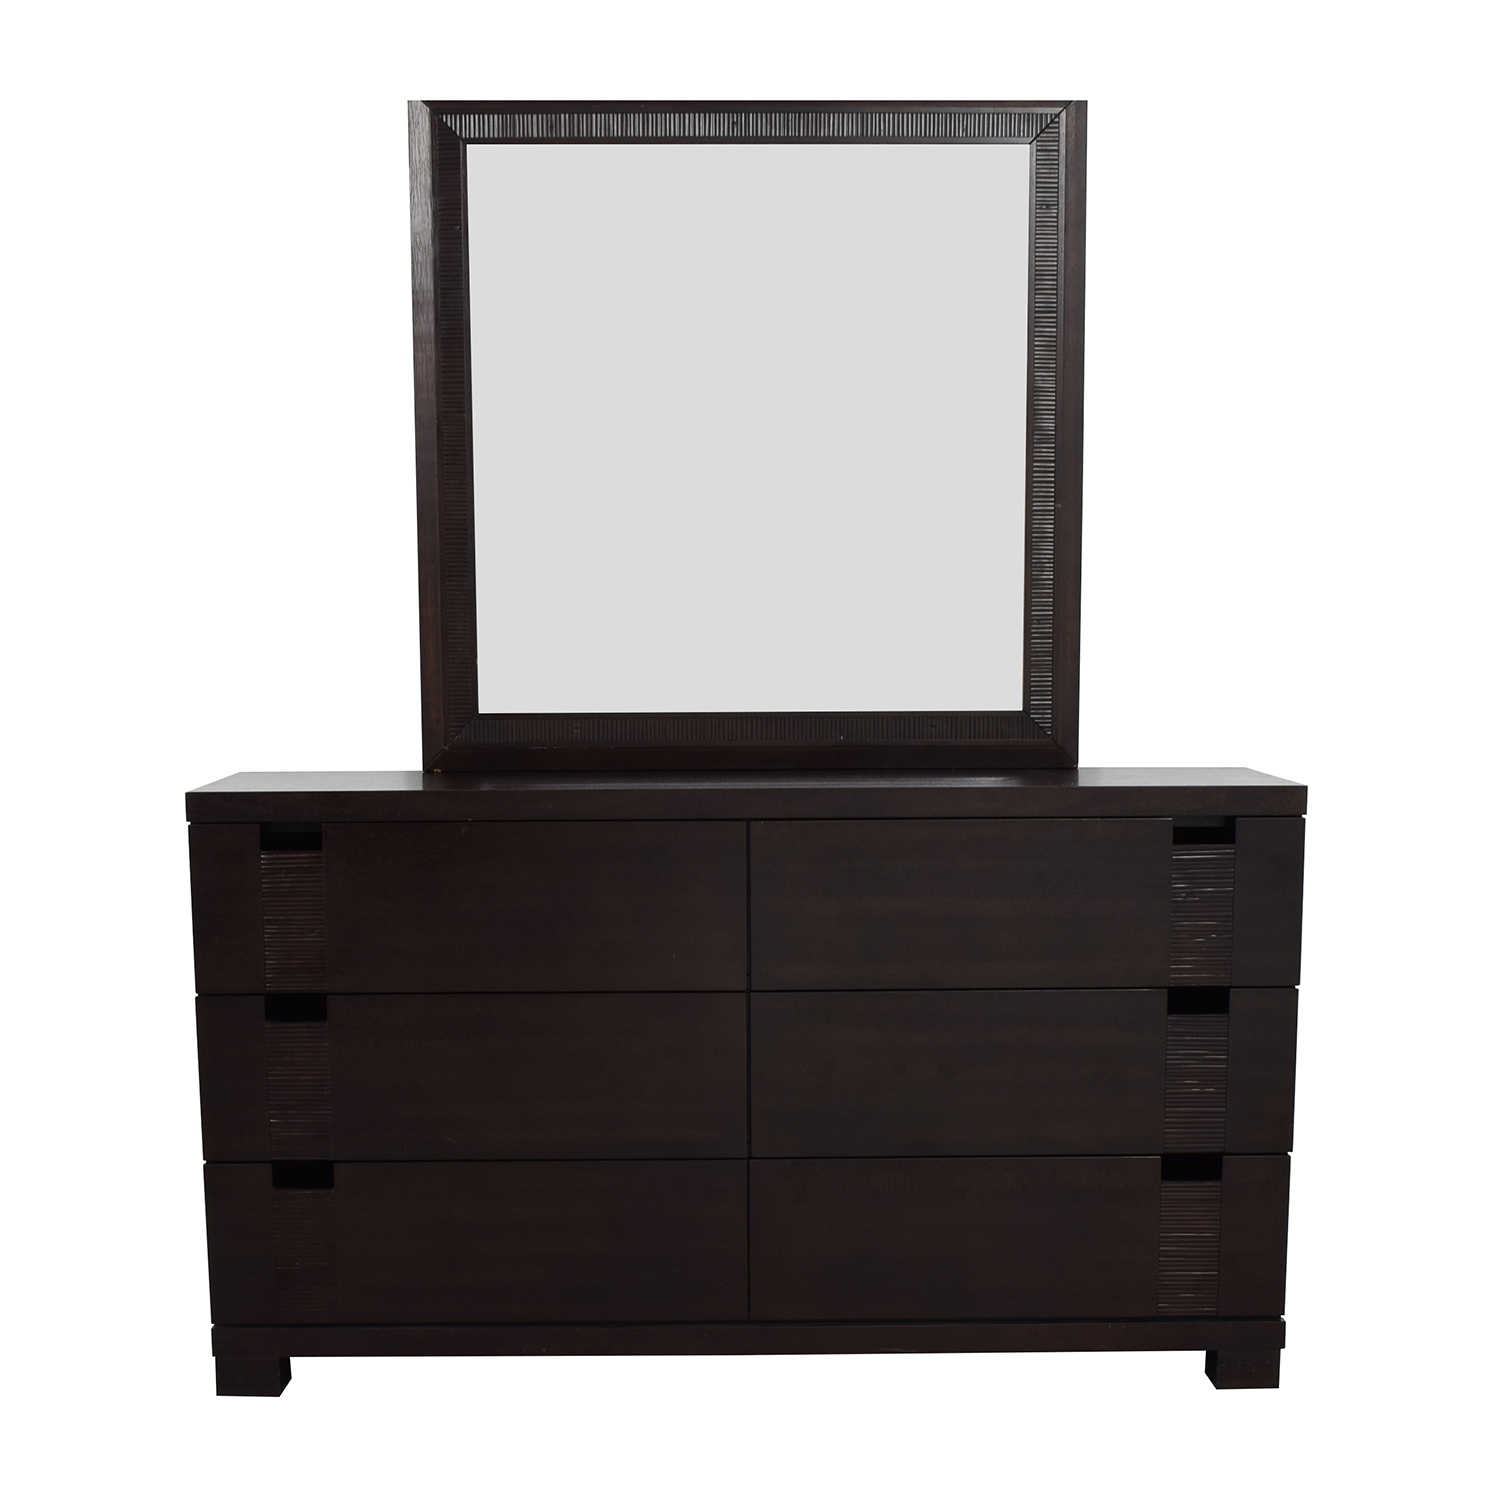 The Door Store The Door Store Dark Brown Wooden Six-Drawer Dresser with Mirror for sale